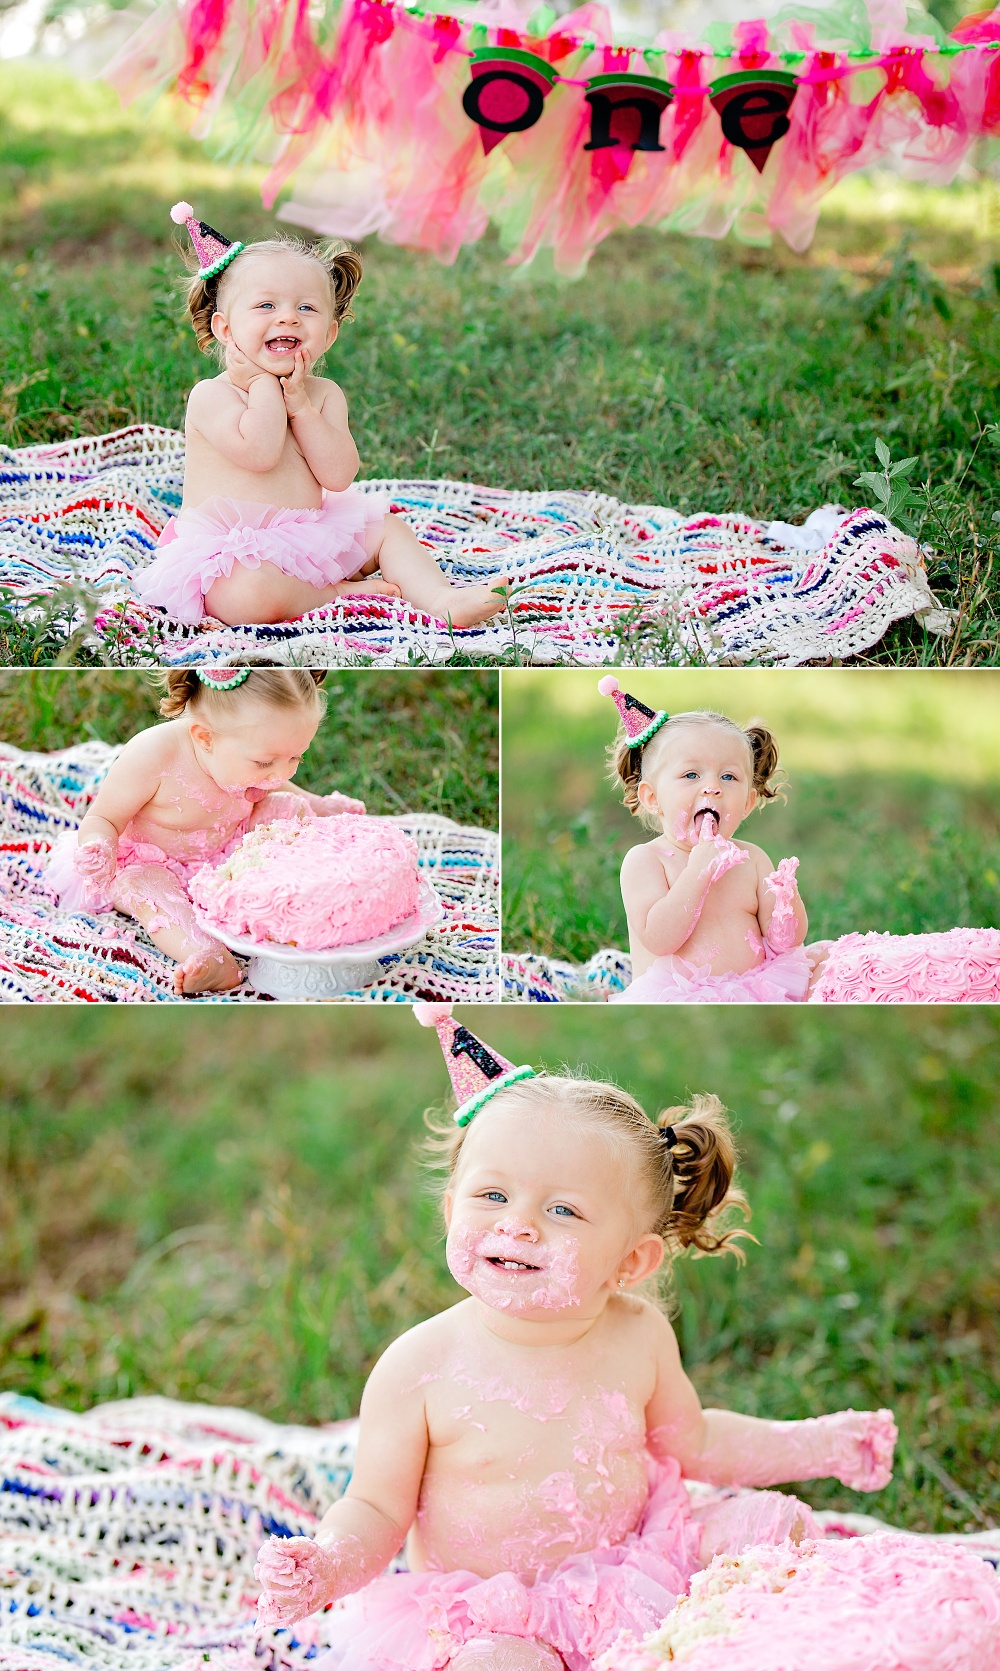 Family-photographer-Cake-Smash-one-year-birthday-pink-theme-carly-barton-photography_0002.jpg